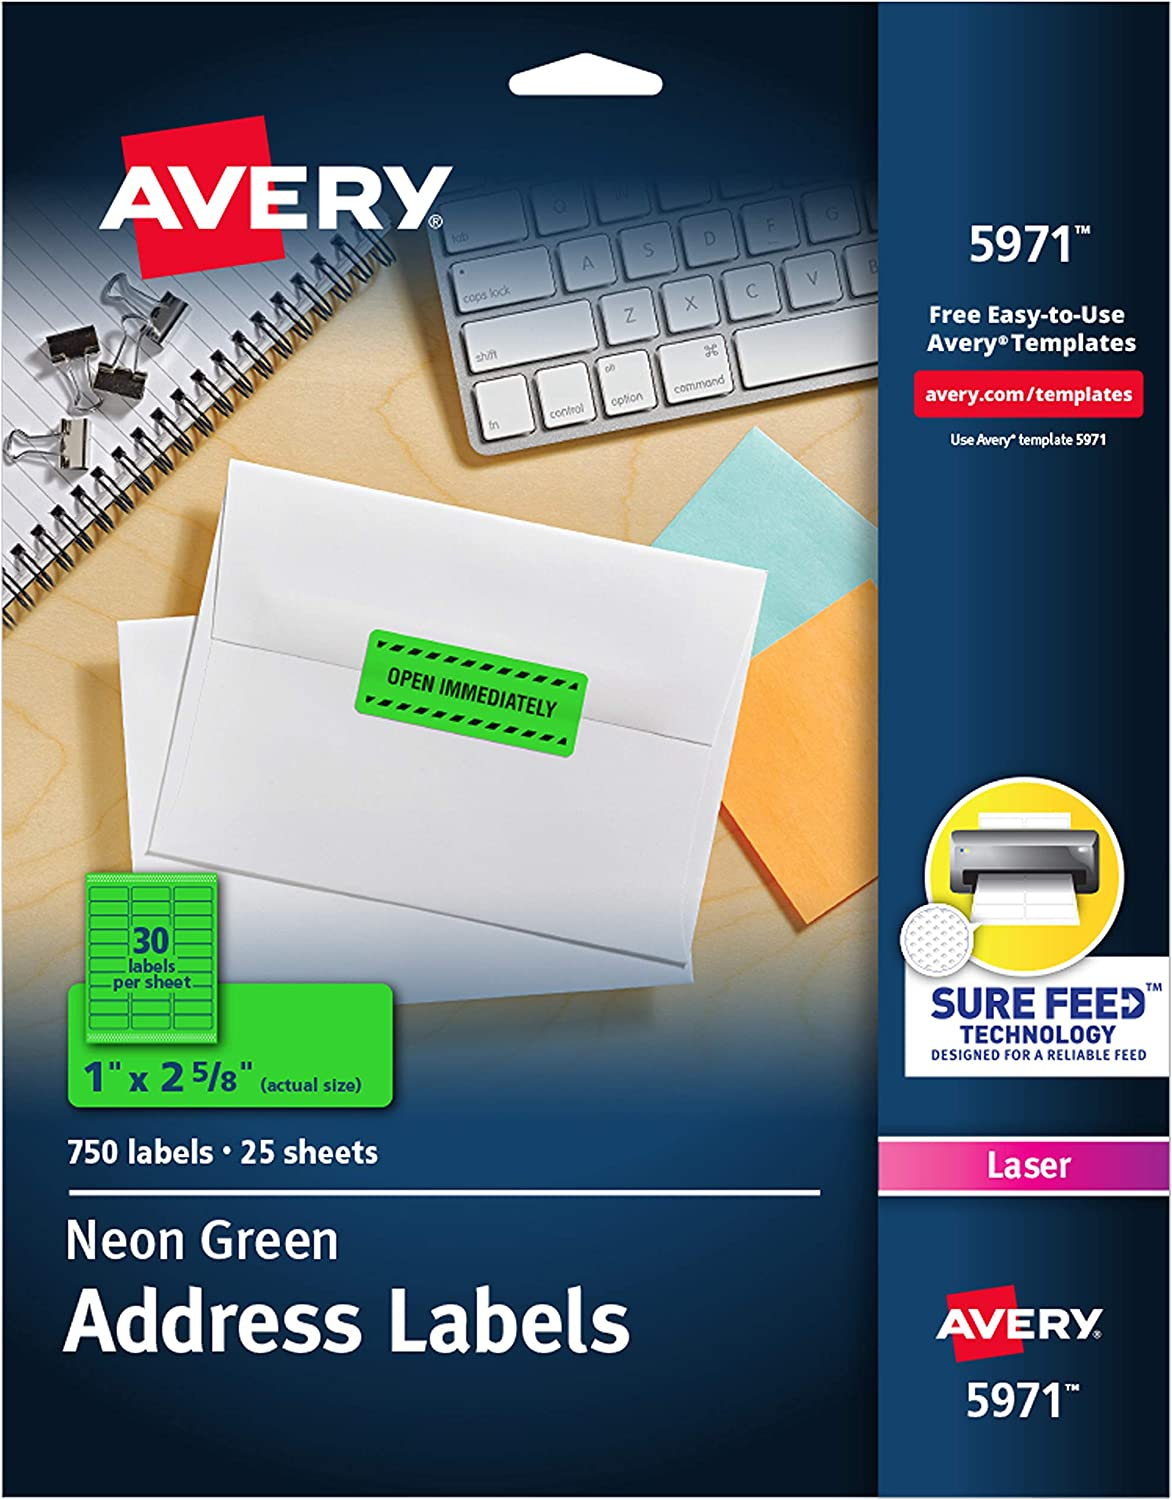 "Avery Neon Address Labels with Sure Feed for Laser Printers, 1 x 2 5/8"", 750 Green Stickers(5971)"